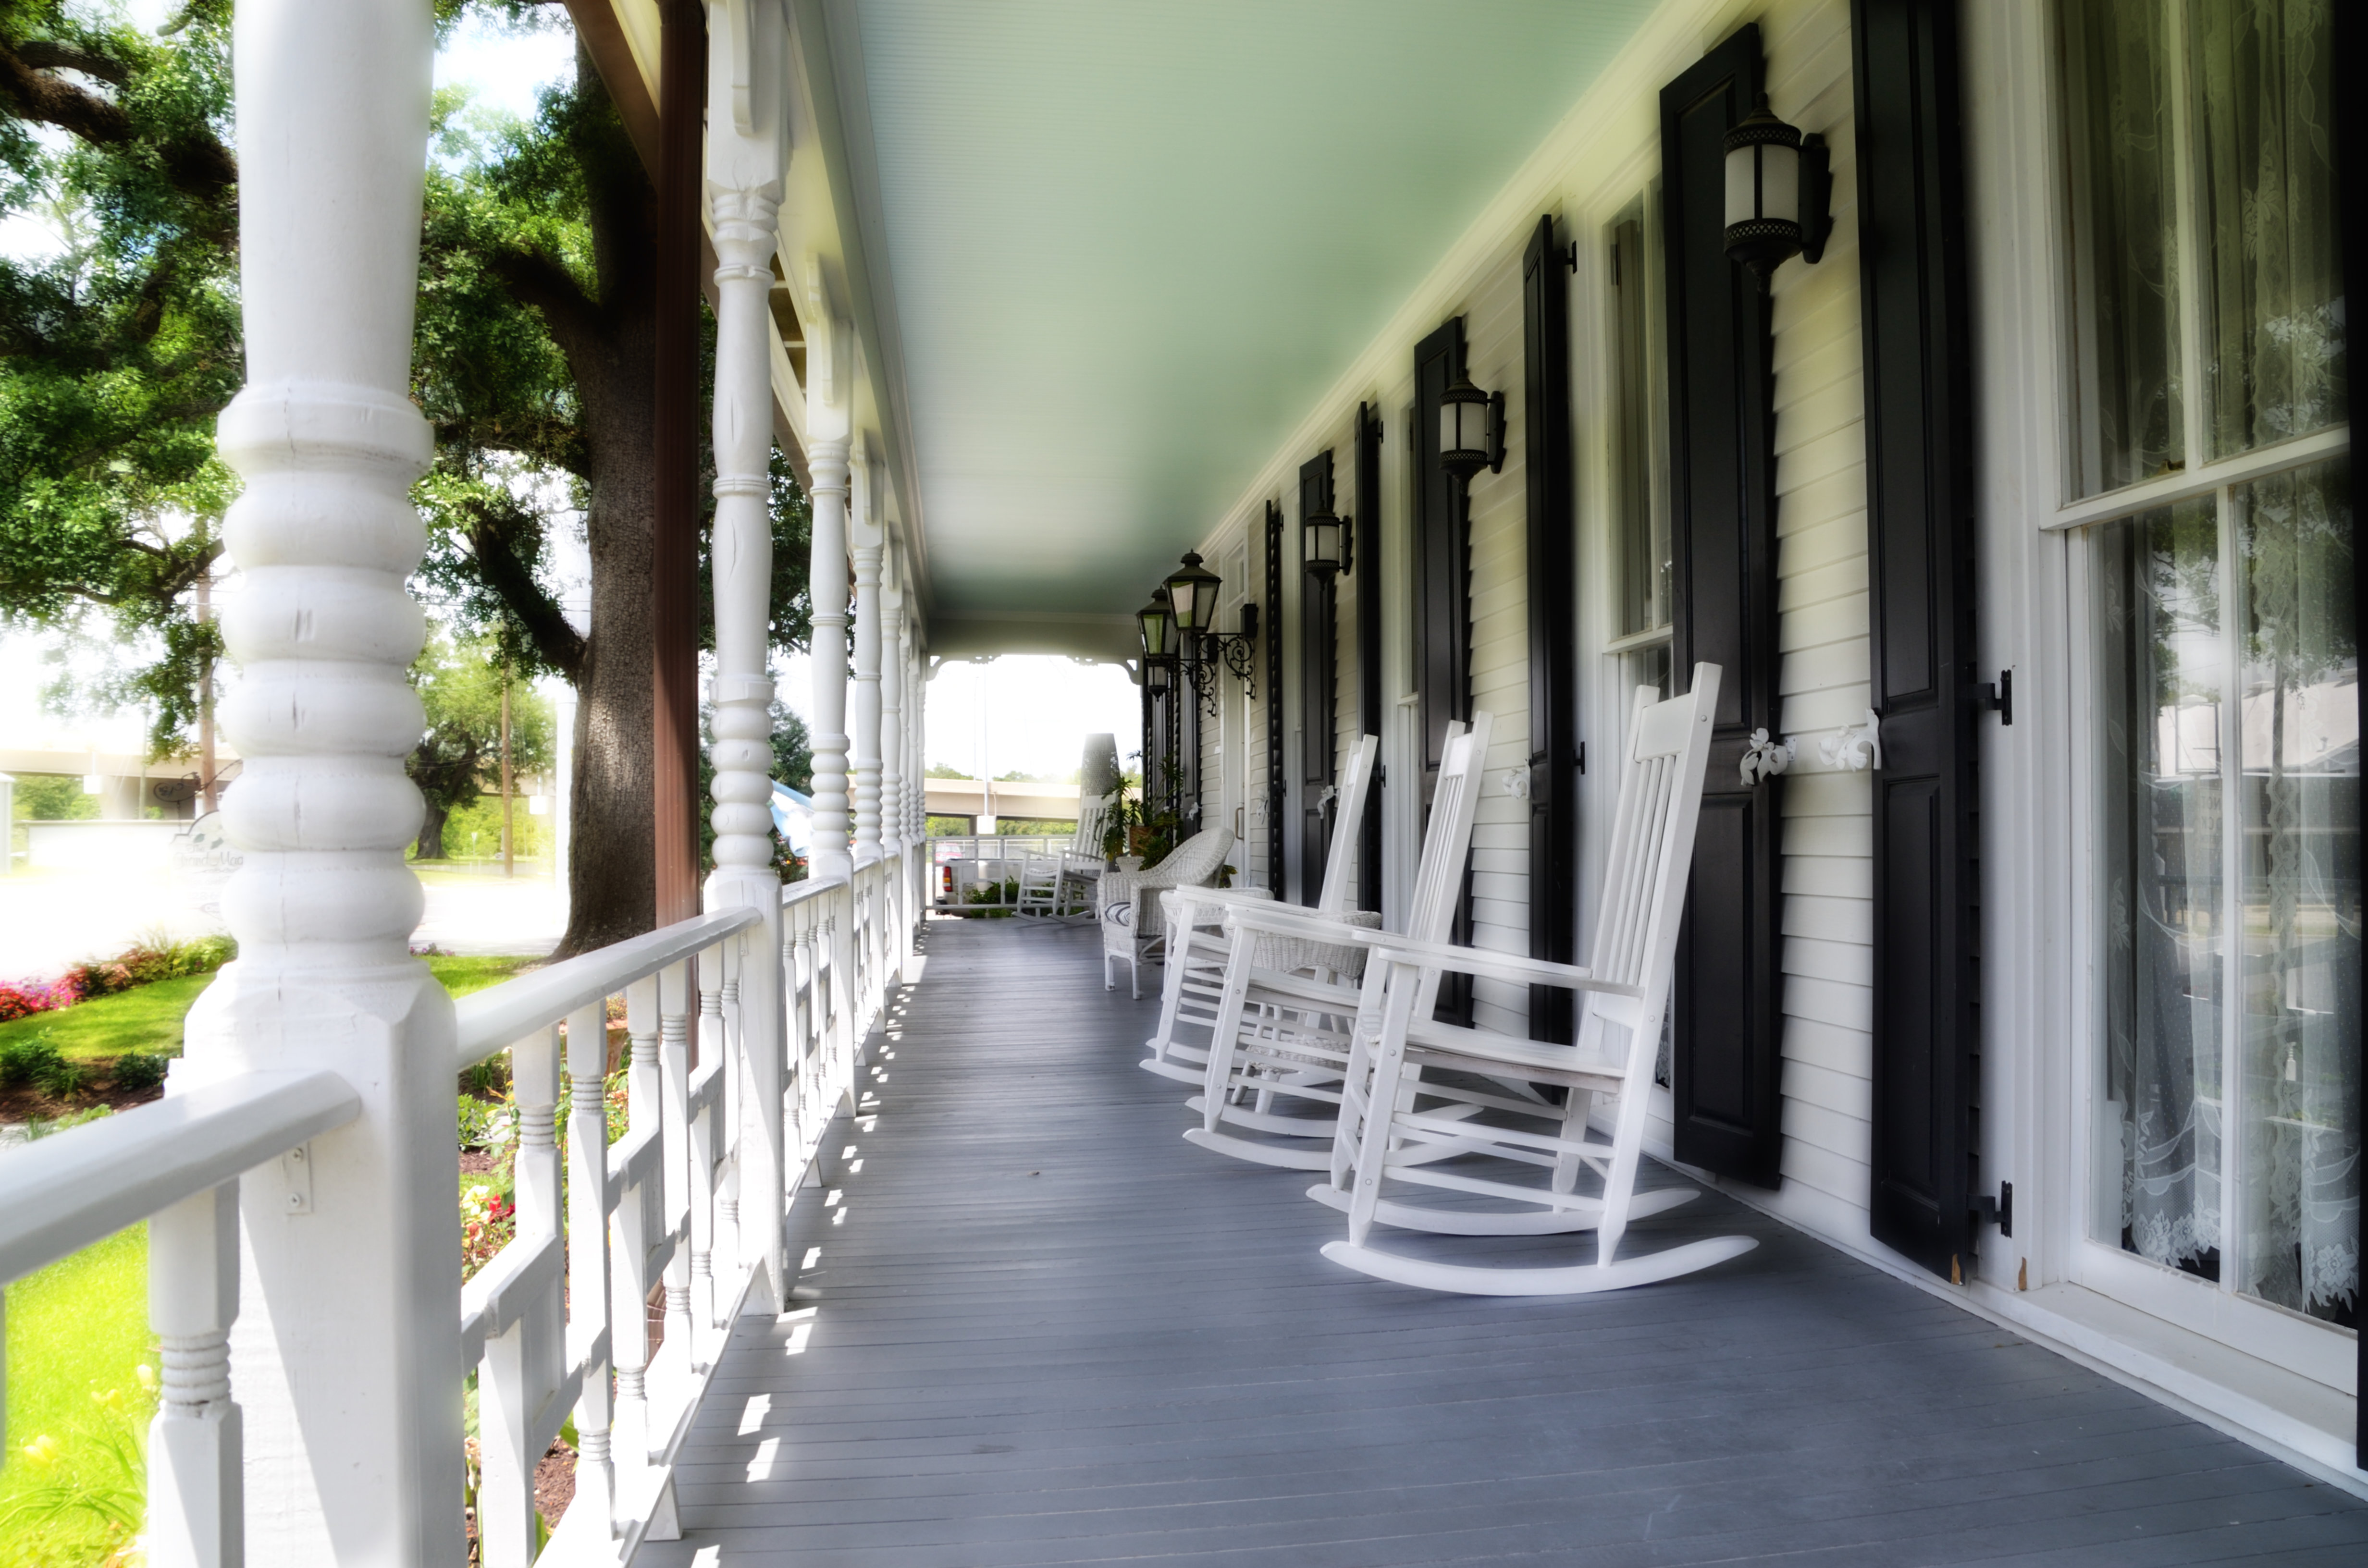 A chair sitting in front of a building at The Grand Magnolia Ballroom & Suites.